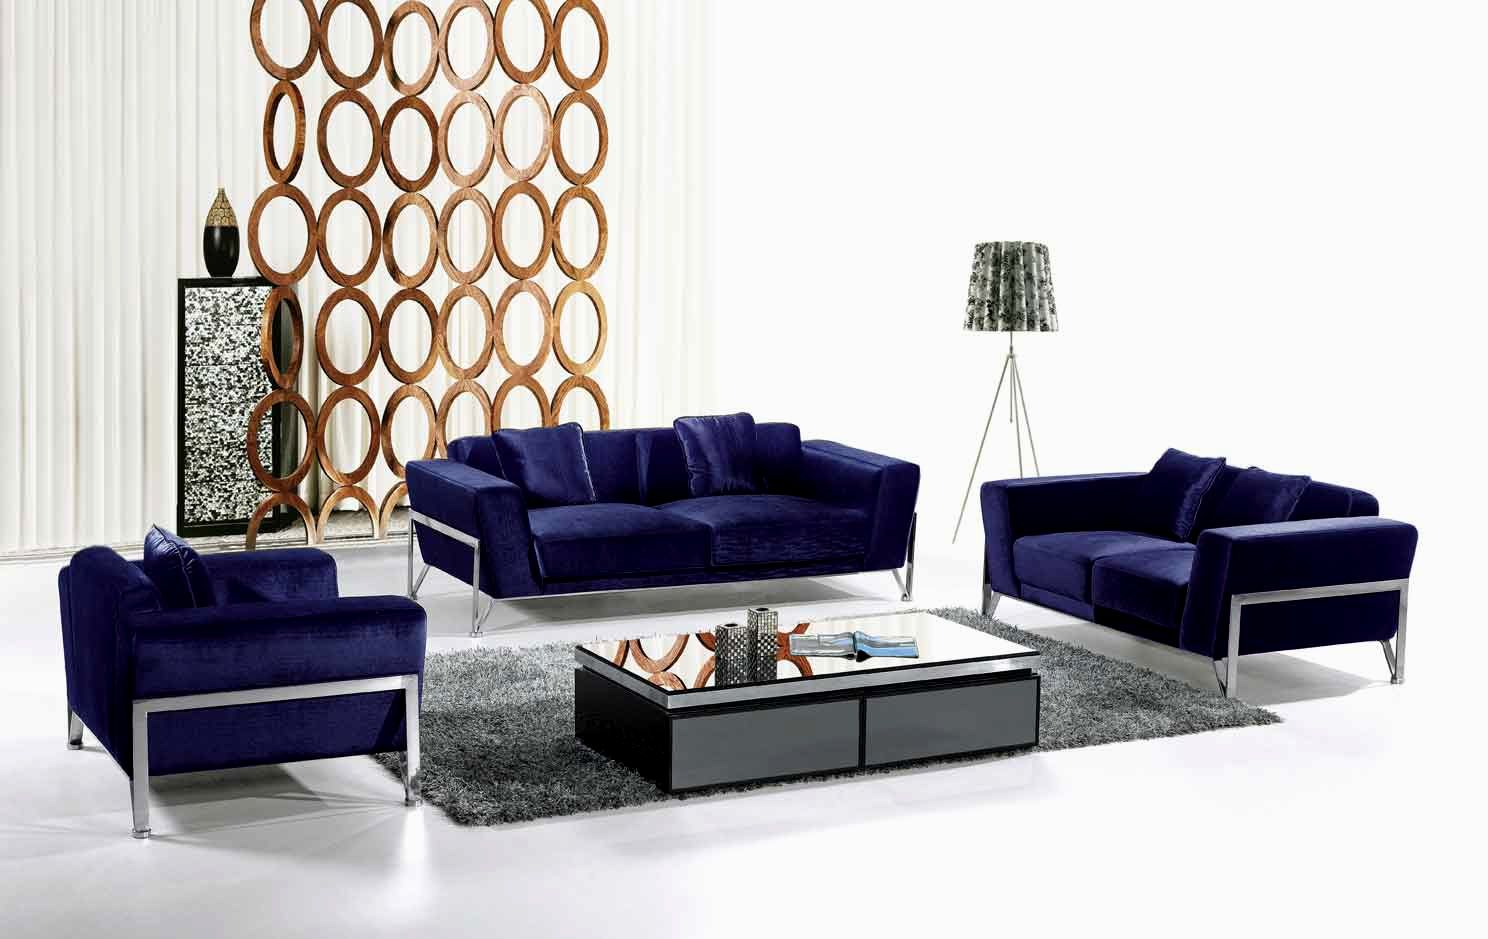 fancy rooms to go sofas design-Cute Rooms to Go sofas Model